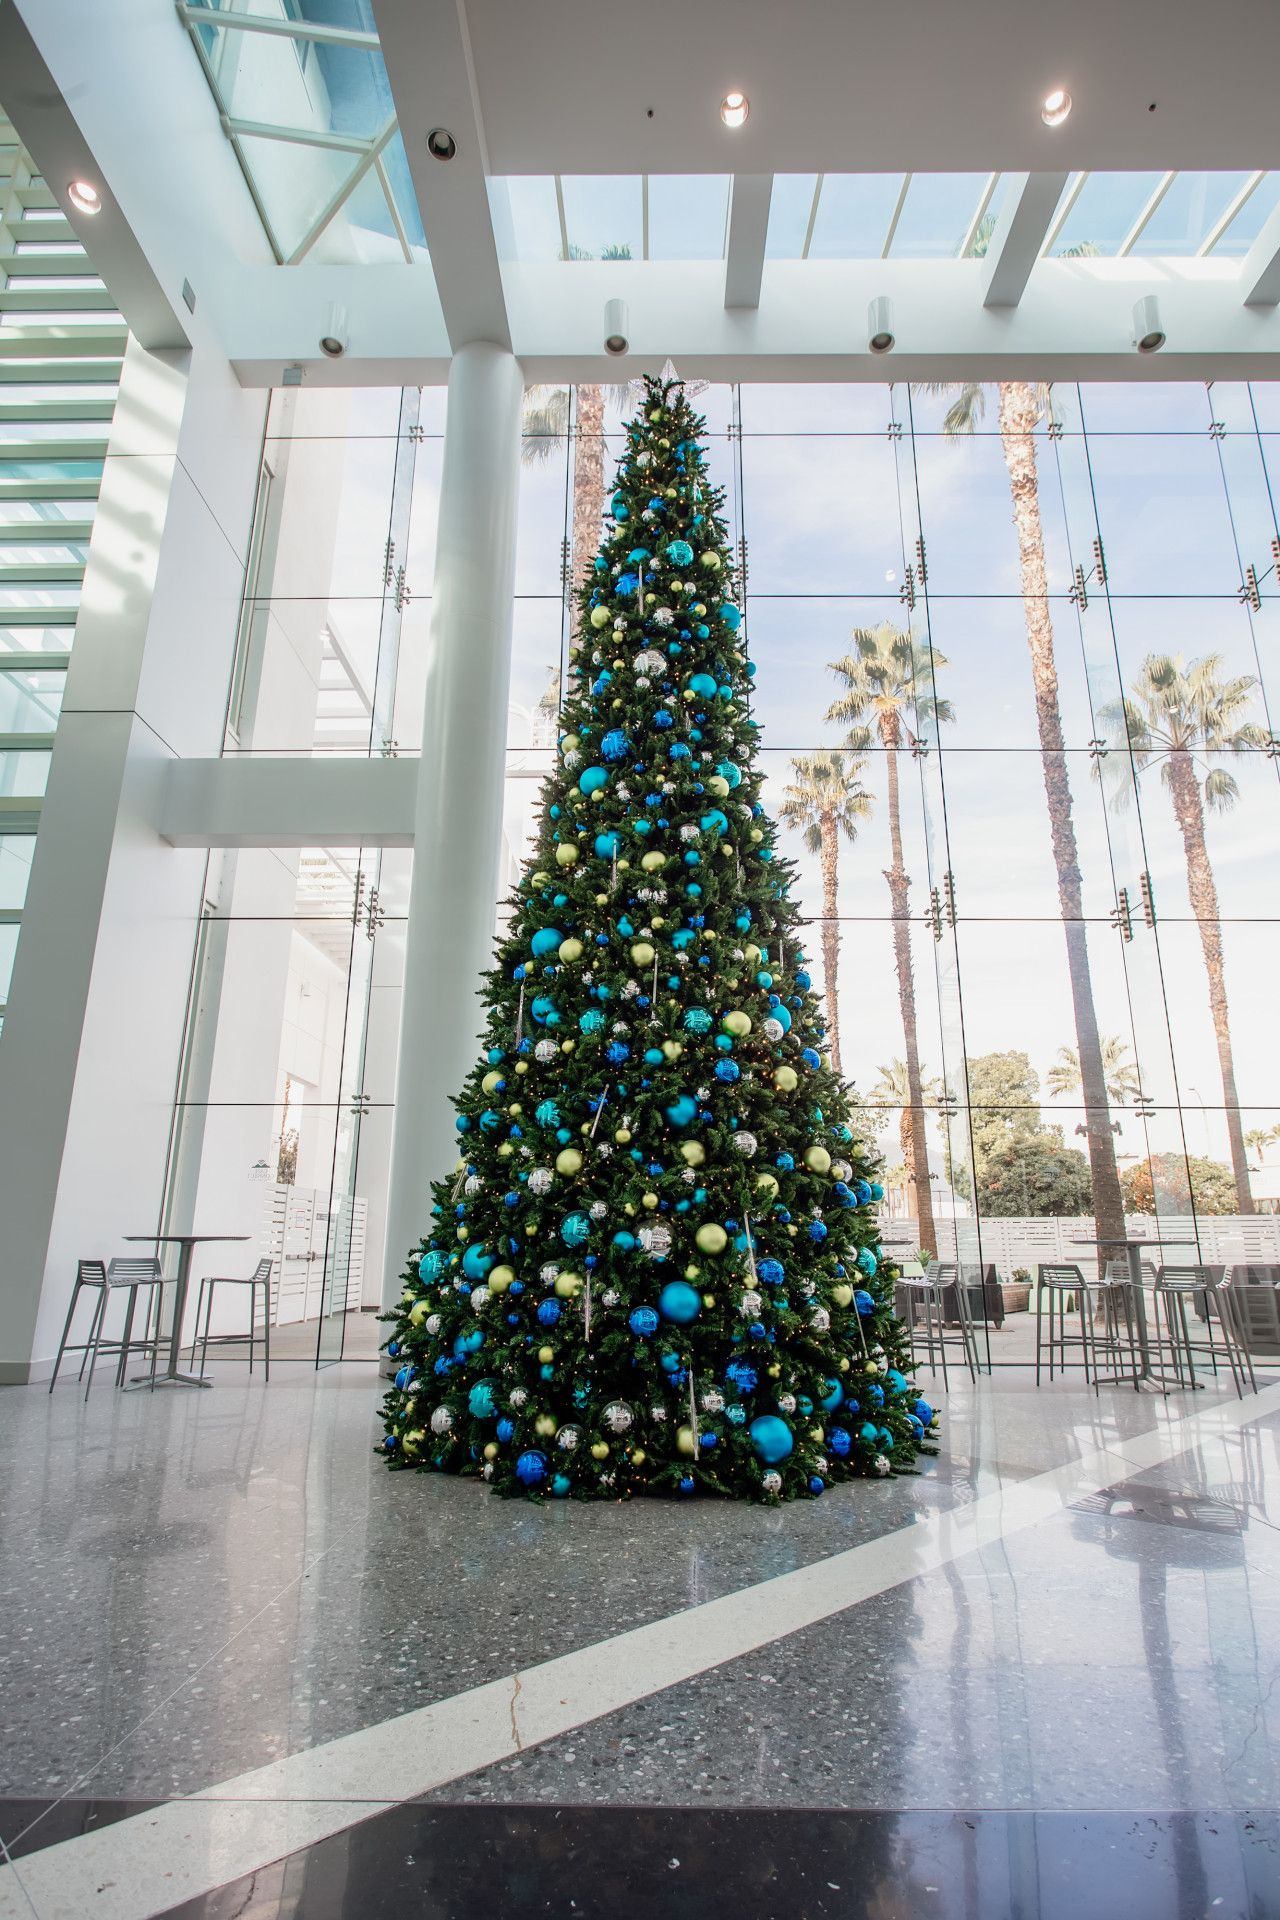 The Ontario Convention Center Had A Royal Blue Coastal Christmas This Year Their Color Palette Included Blue T In 2020 Holiday Decor Coastal Christmas Blue Christmas